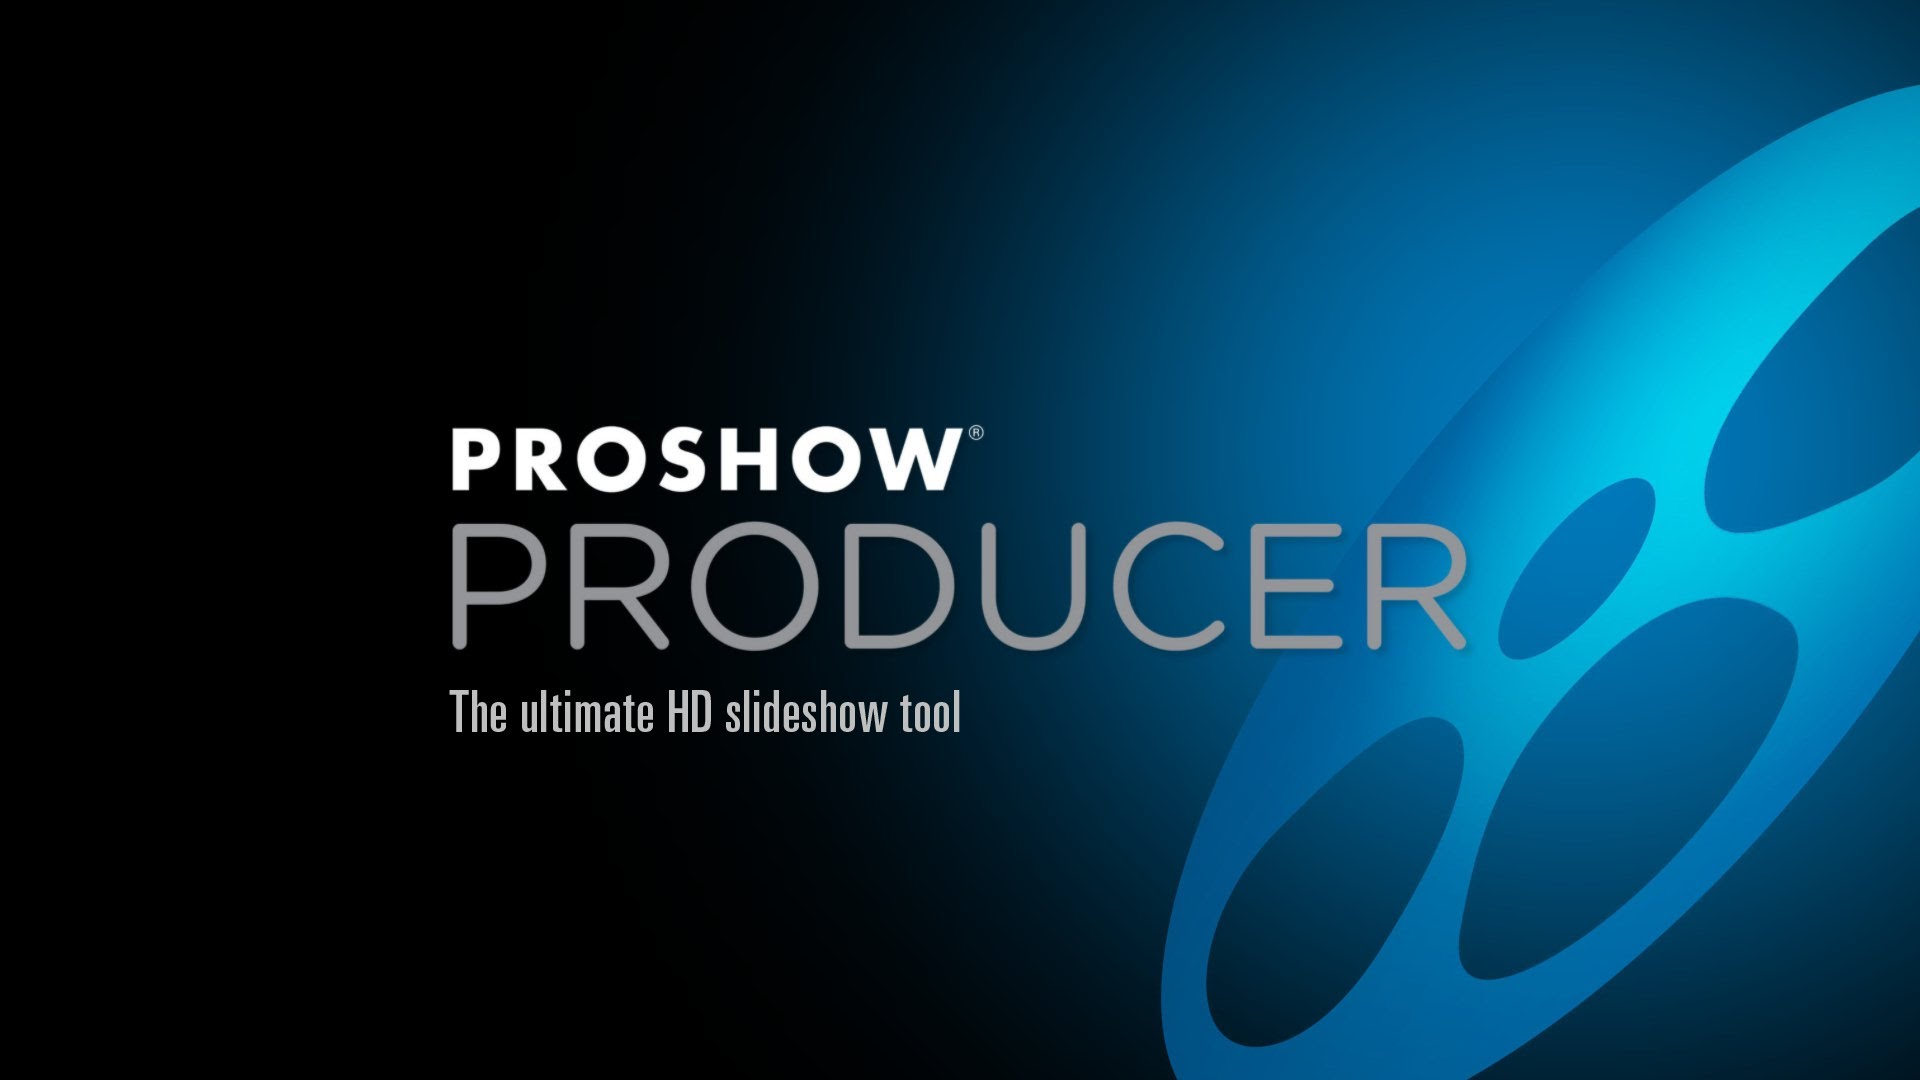 proshow producer download for mobile